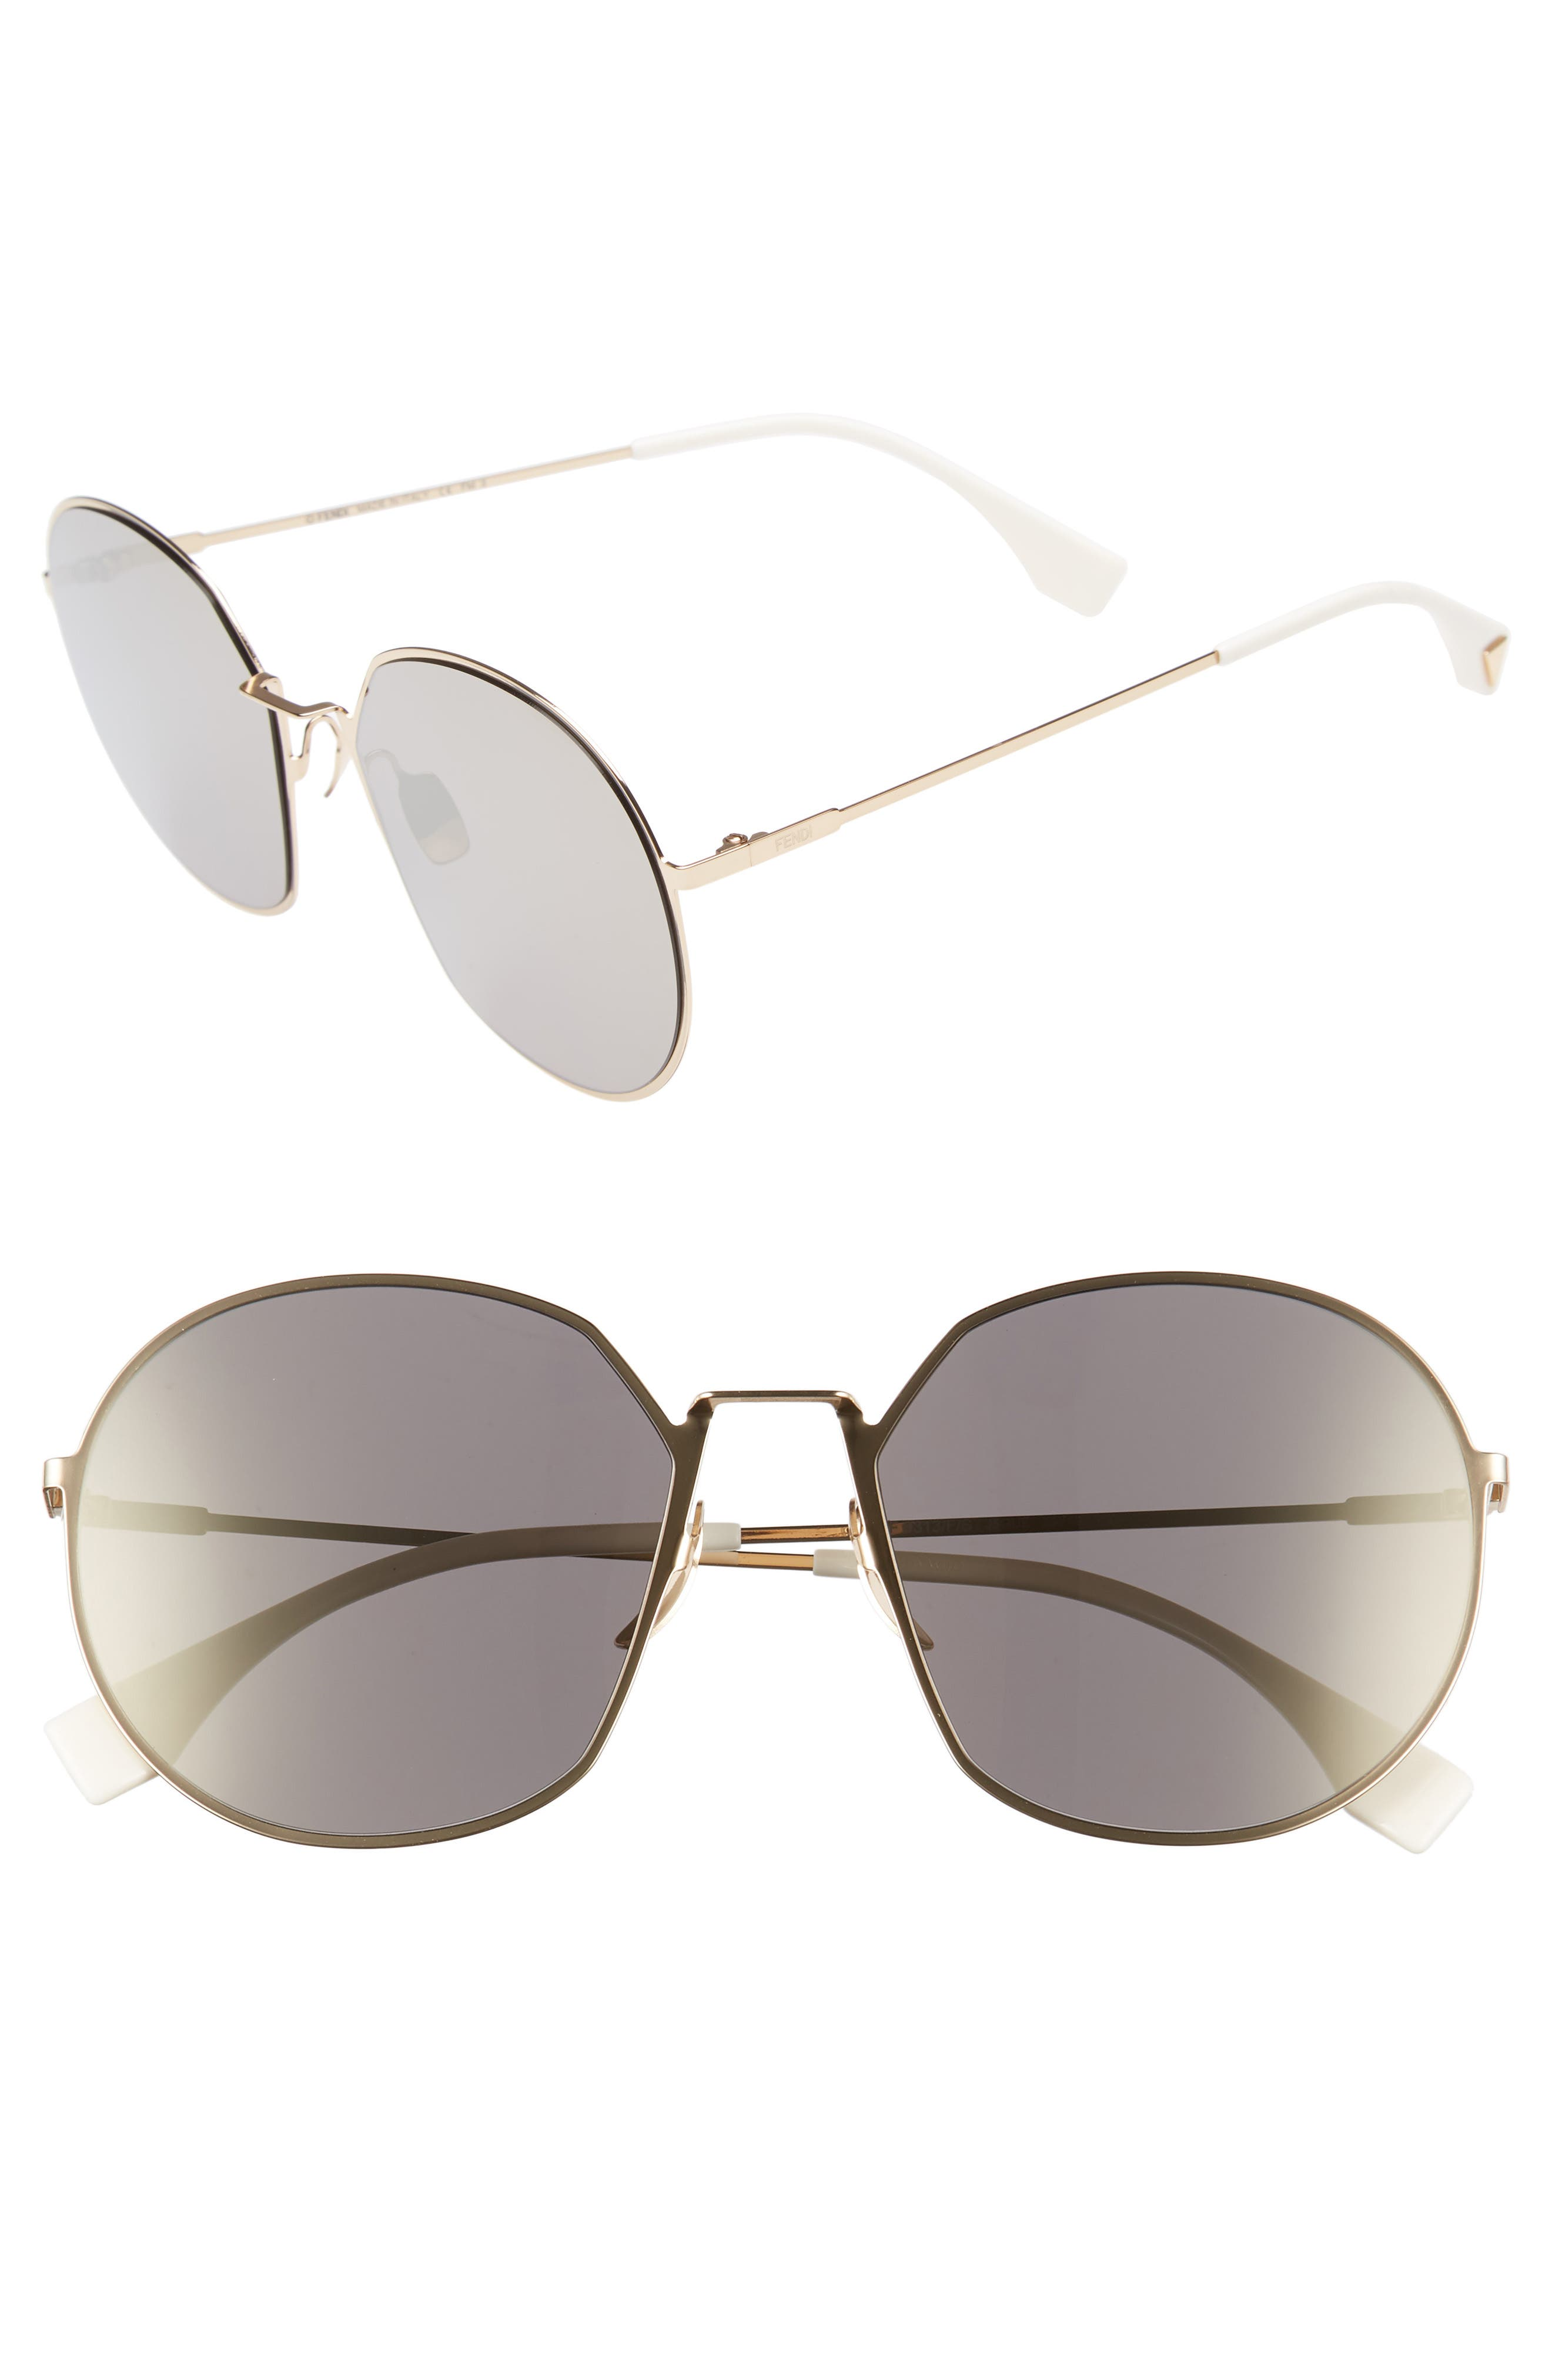 59mm Round Special Fit Sunglasses,                             Main thumbnail 4, color,